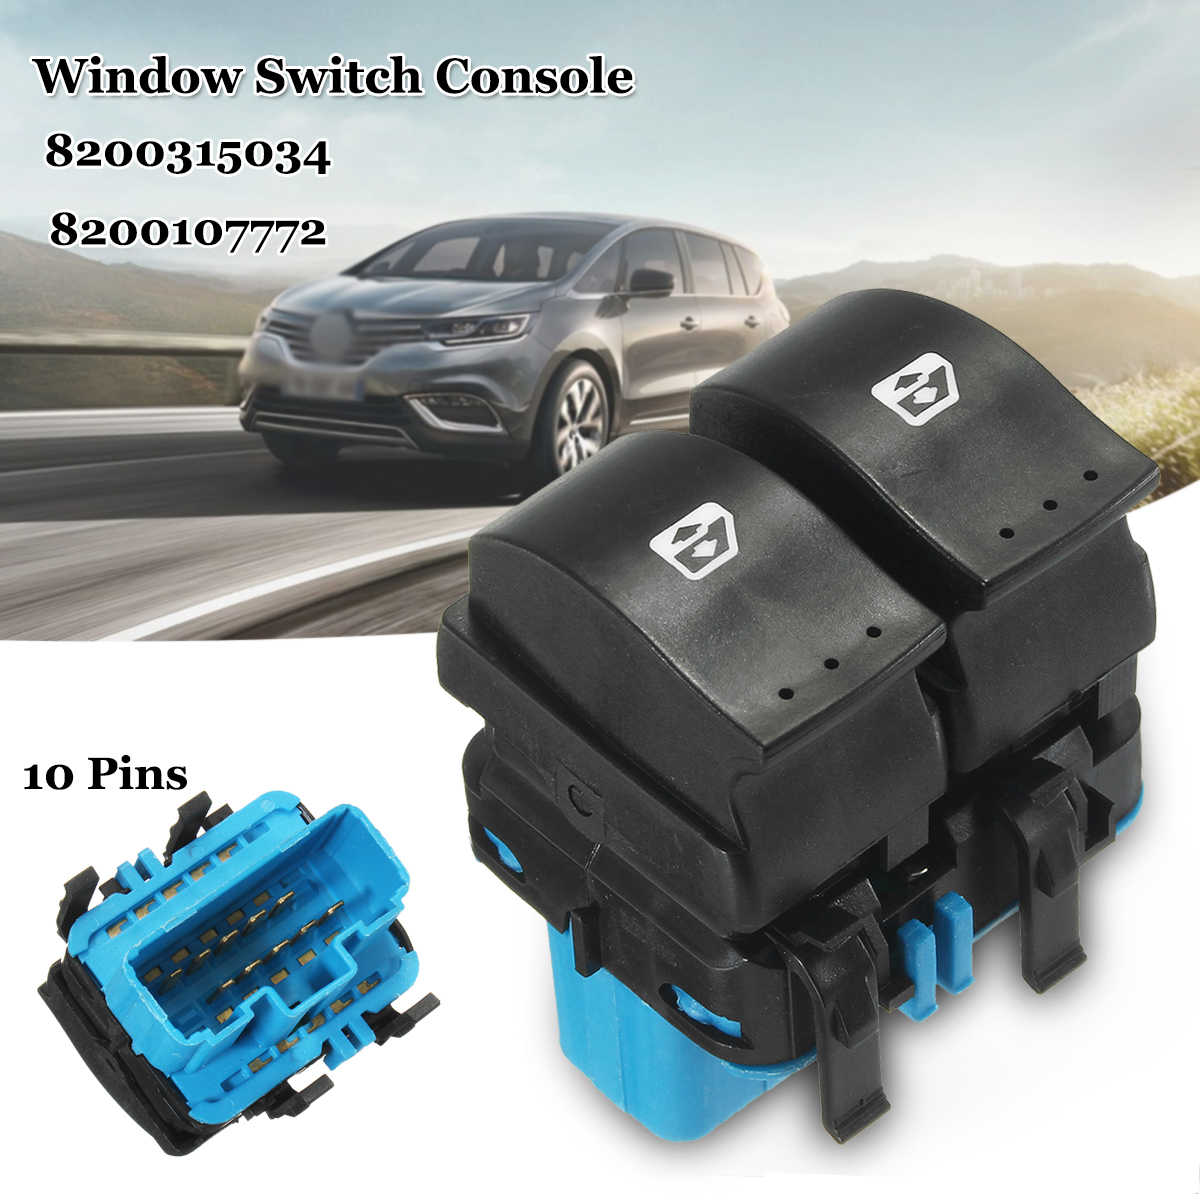 10 pins electric window switch lifter switches blue brown for renault megane ii 2002  [ 1200 x 1200 Pixel ]